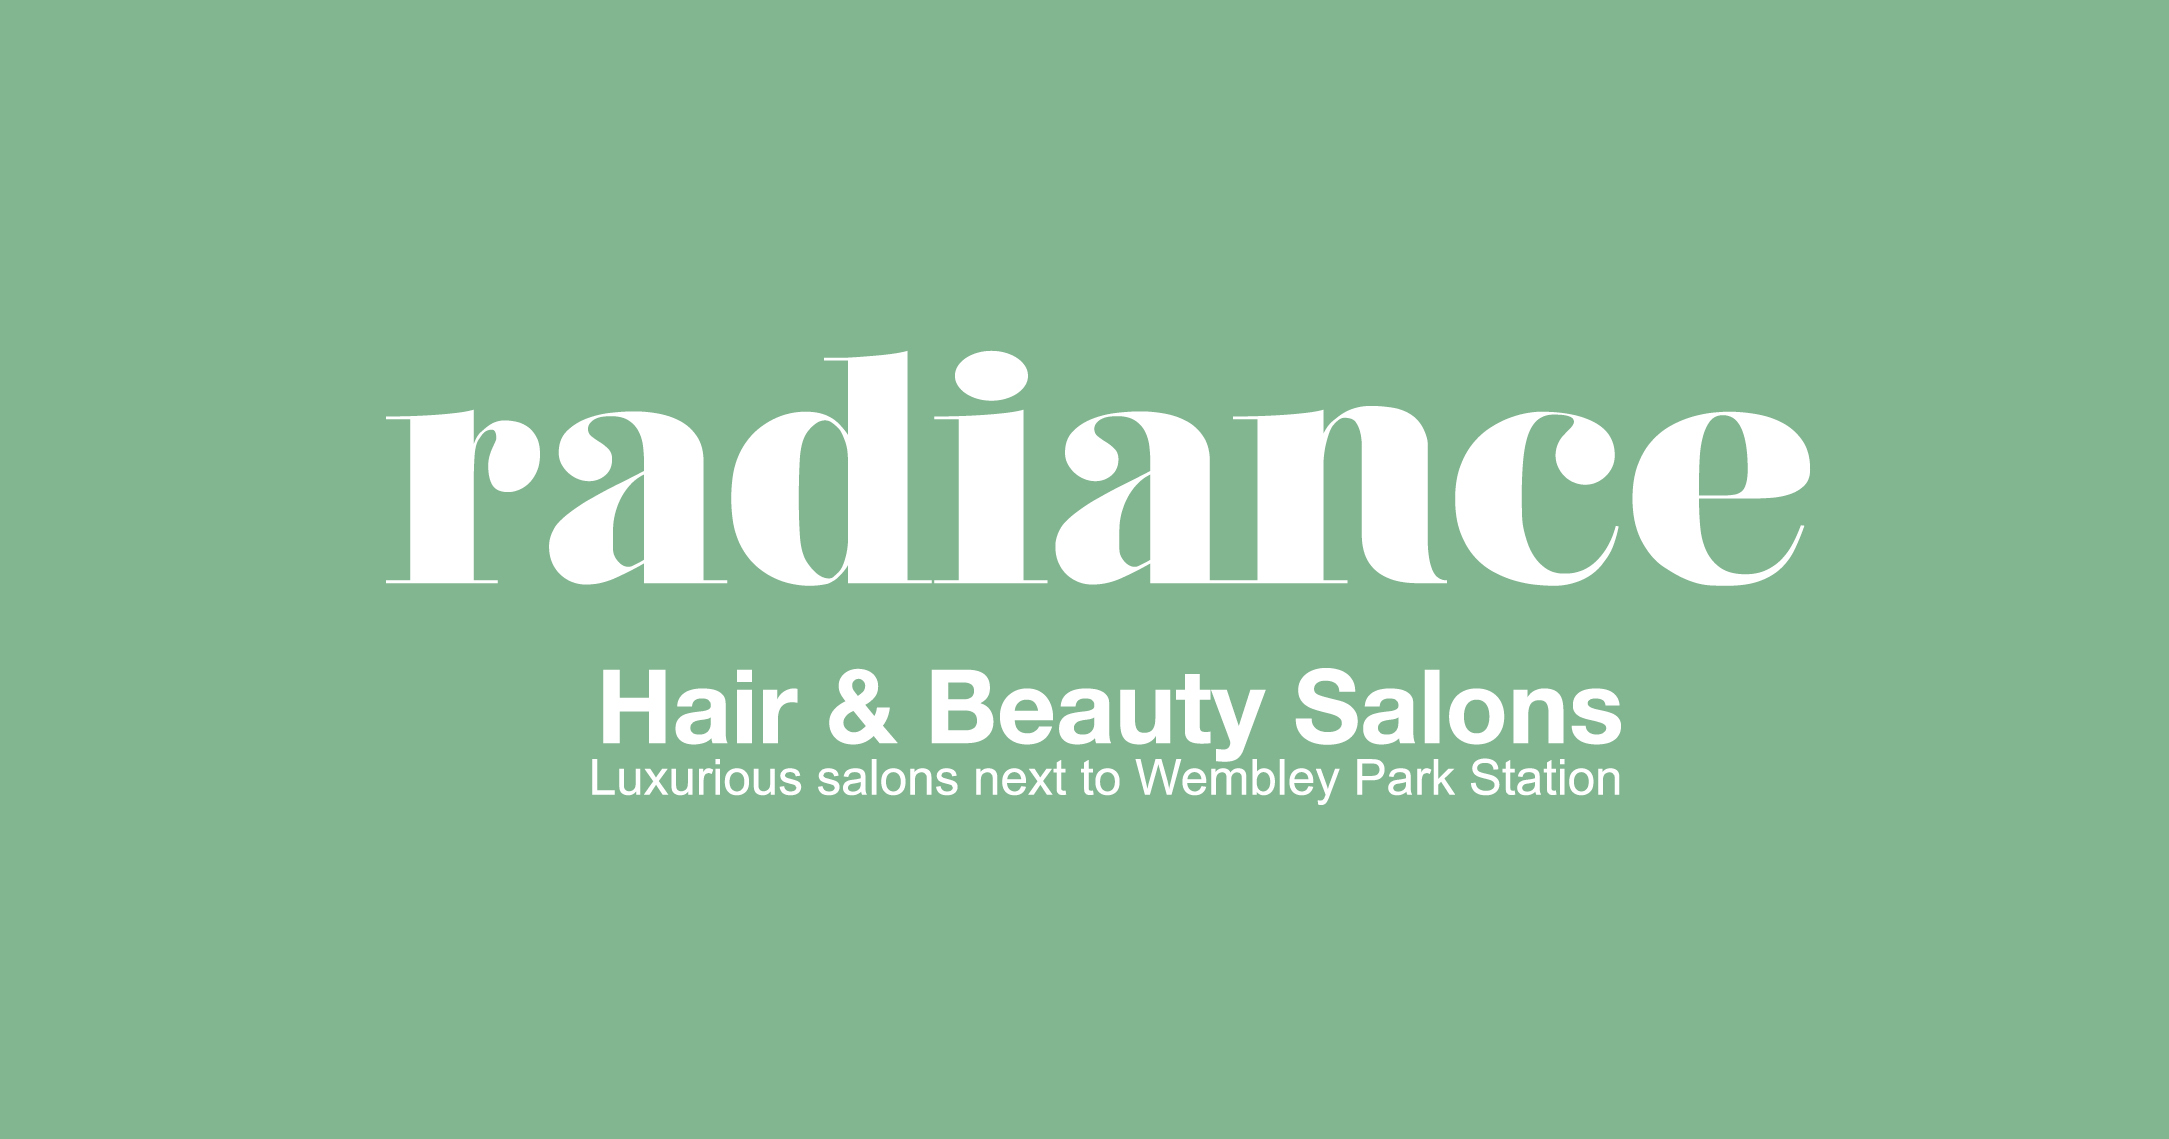 2021-01-26 Radiance hairdressing banner